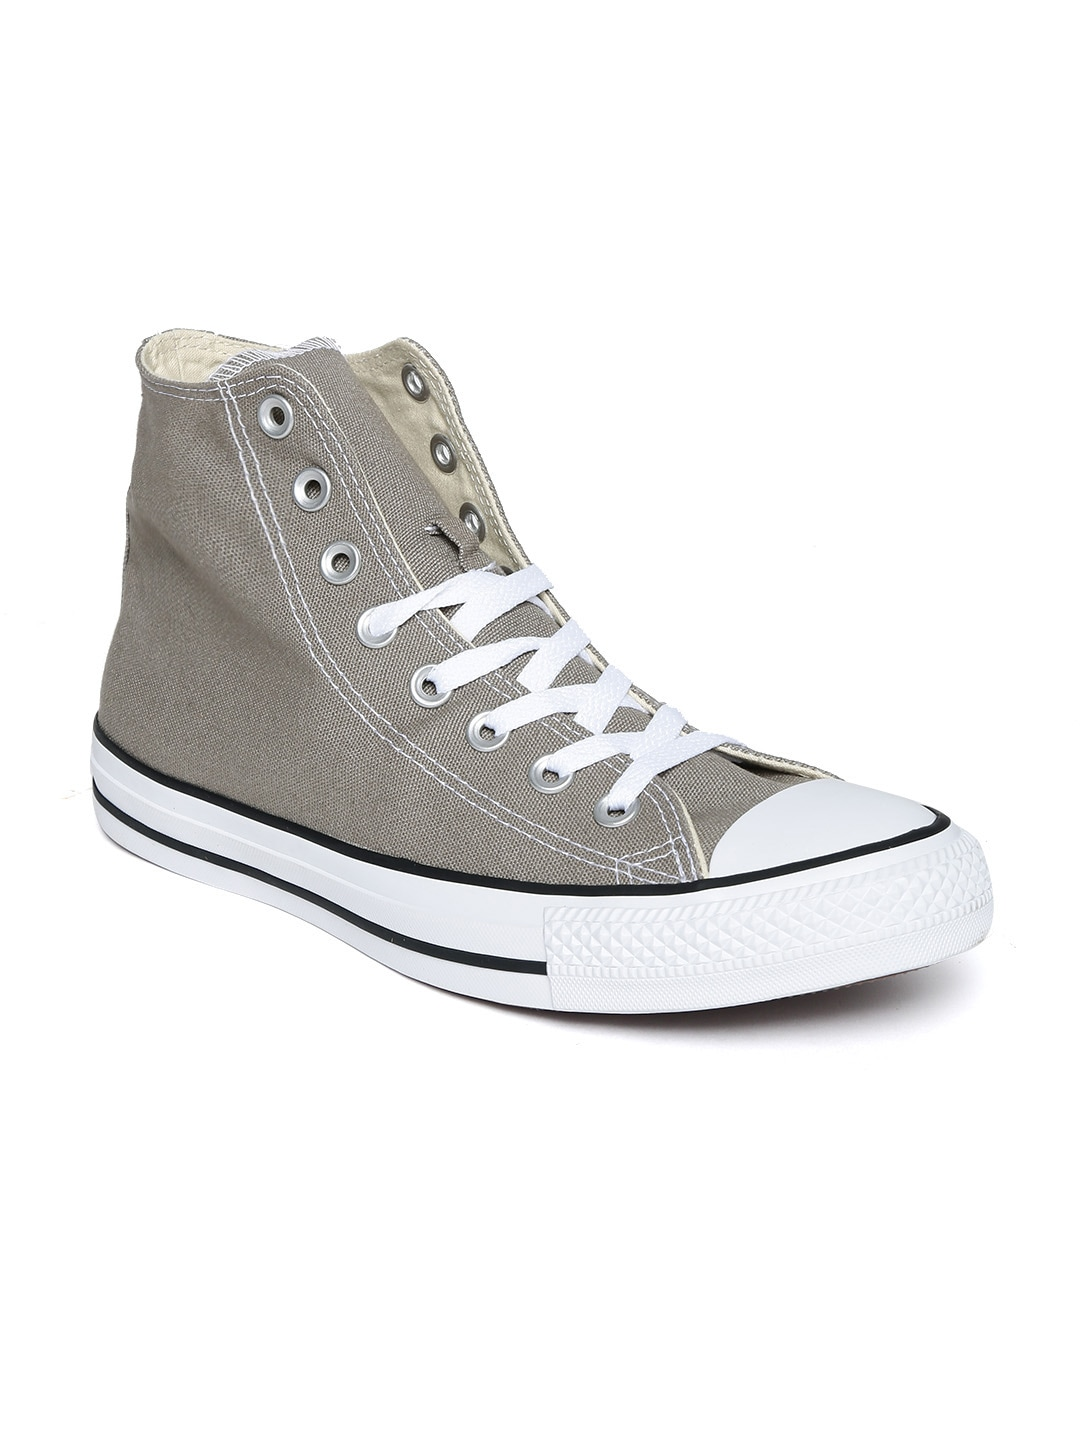 Converse Unisex Taupe Canvas Shoes